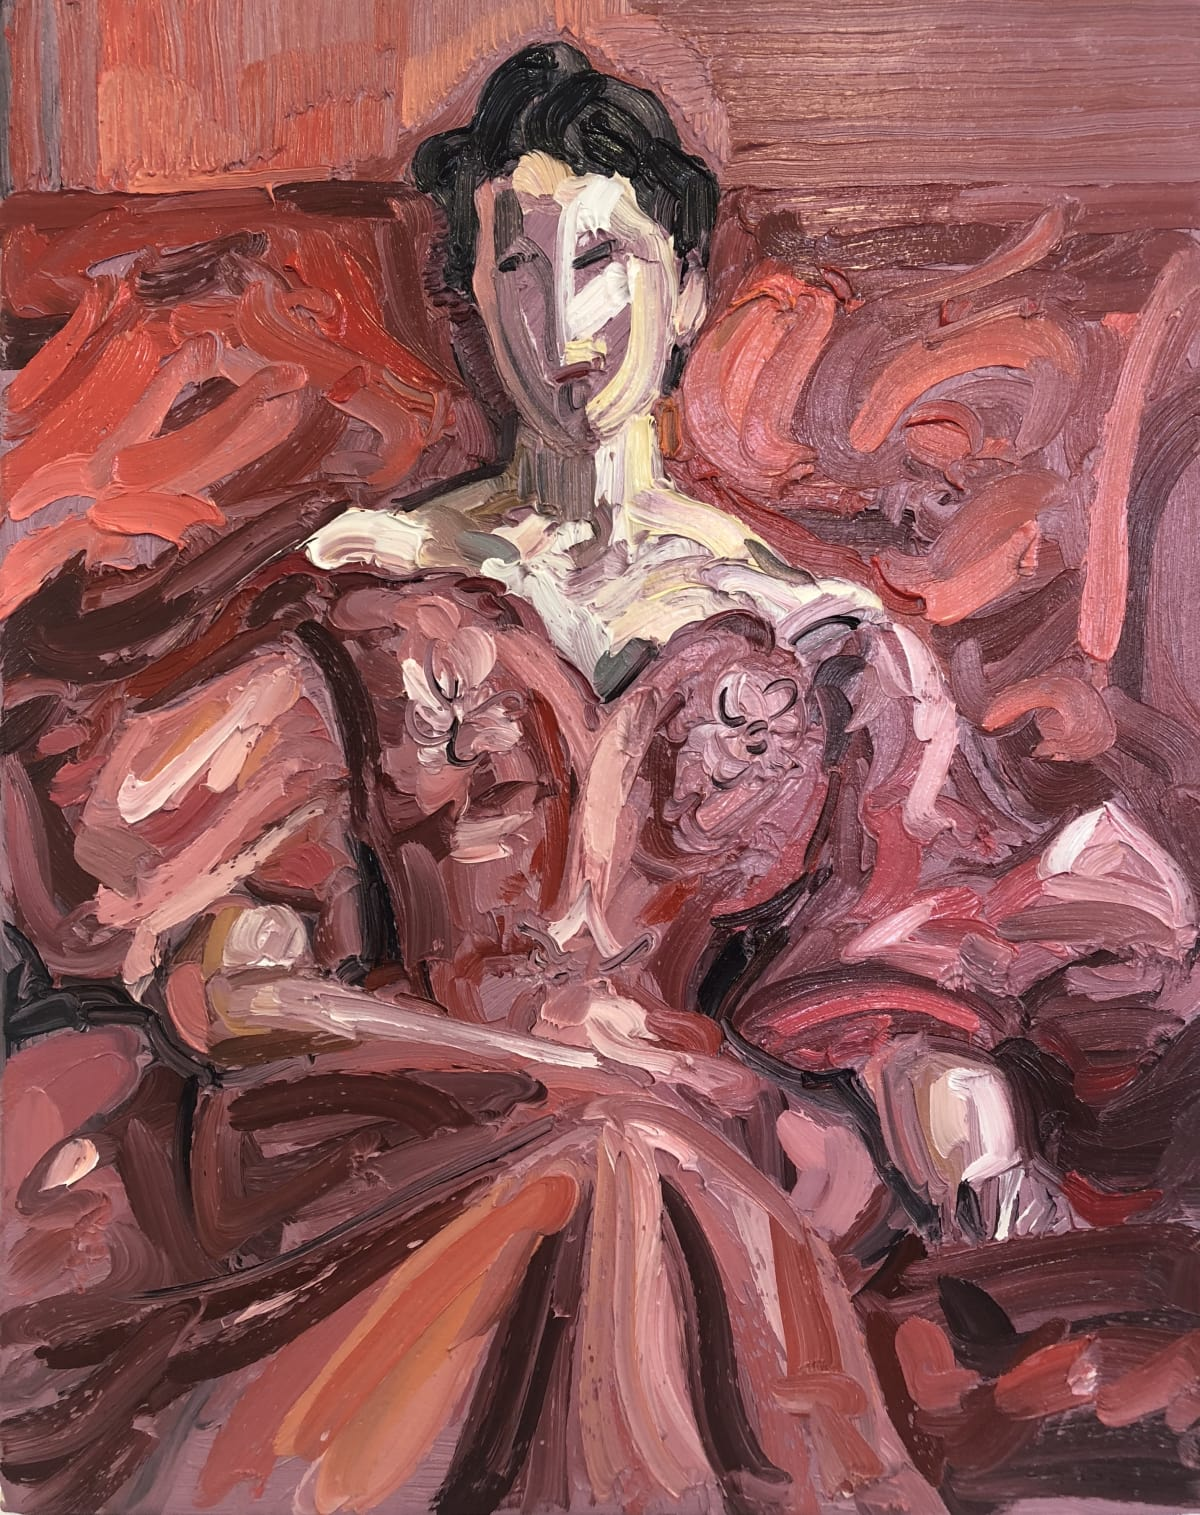 Frans Smit After Sargent, Lady in Red Dress, 2018 Oil on Canvas 19 1/2 x 16 in 50 x 40 cm